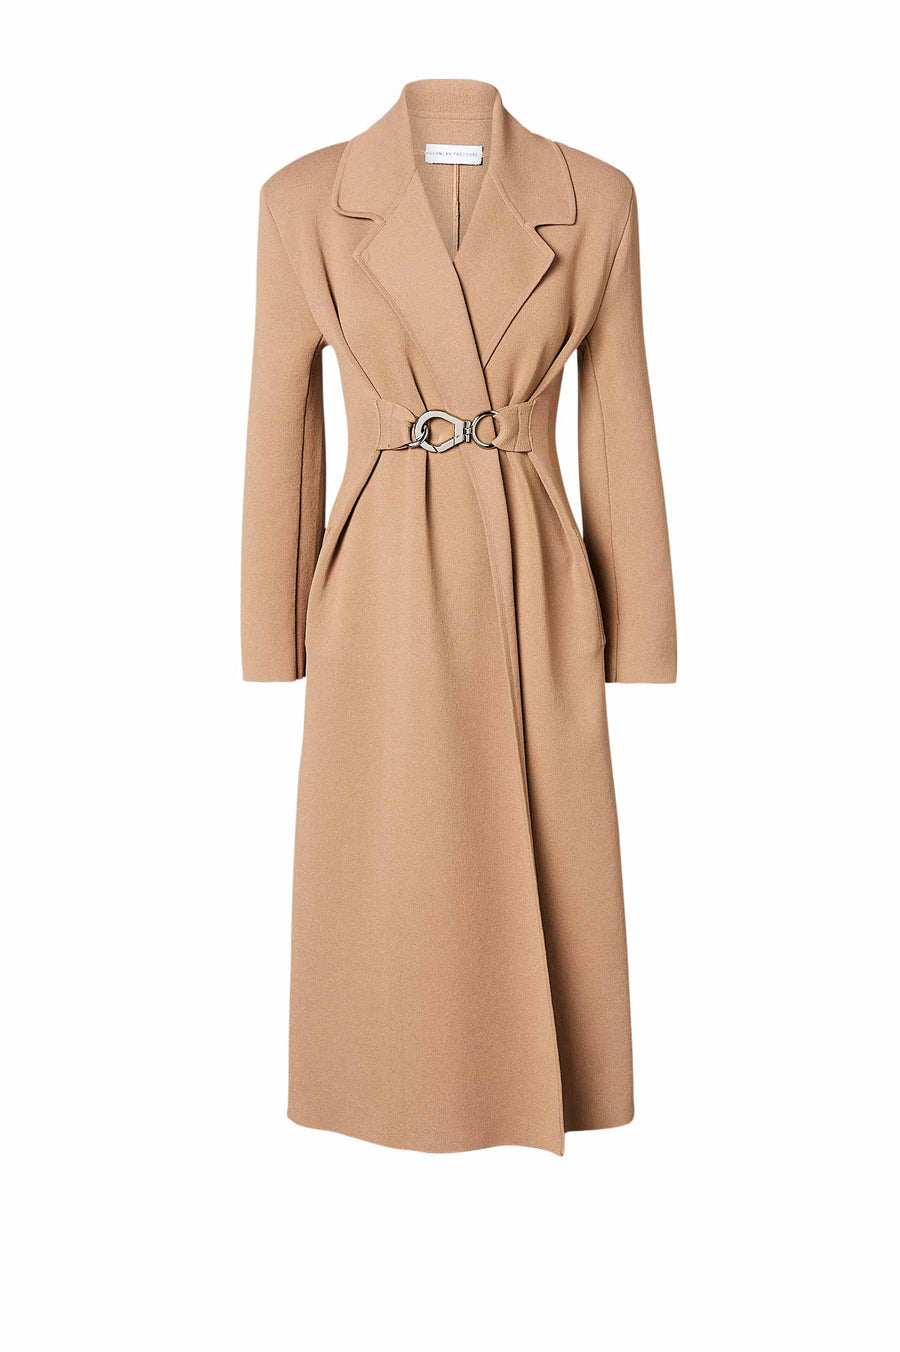 Crepe Knit Belted Coat Latte - Scanlan Theodore